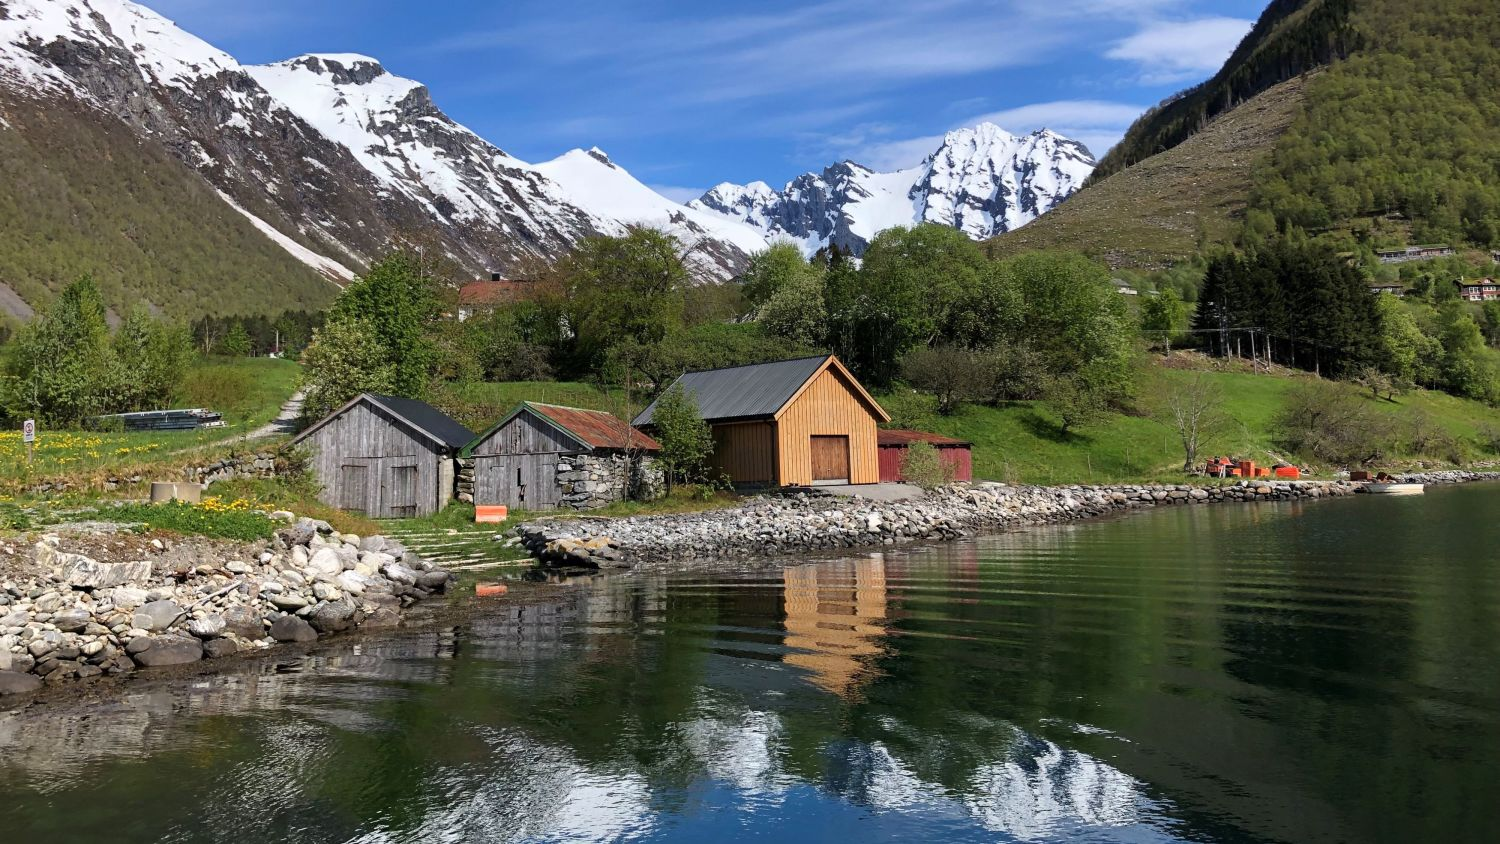 Boathouses by the fjord in the little hamlet Urke